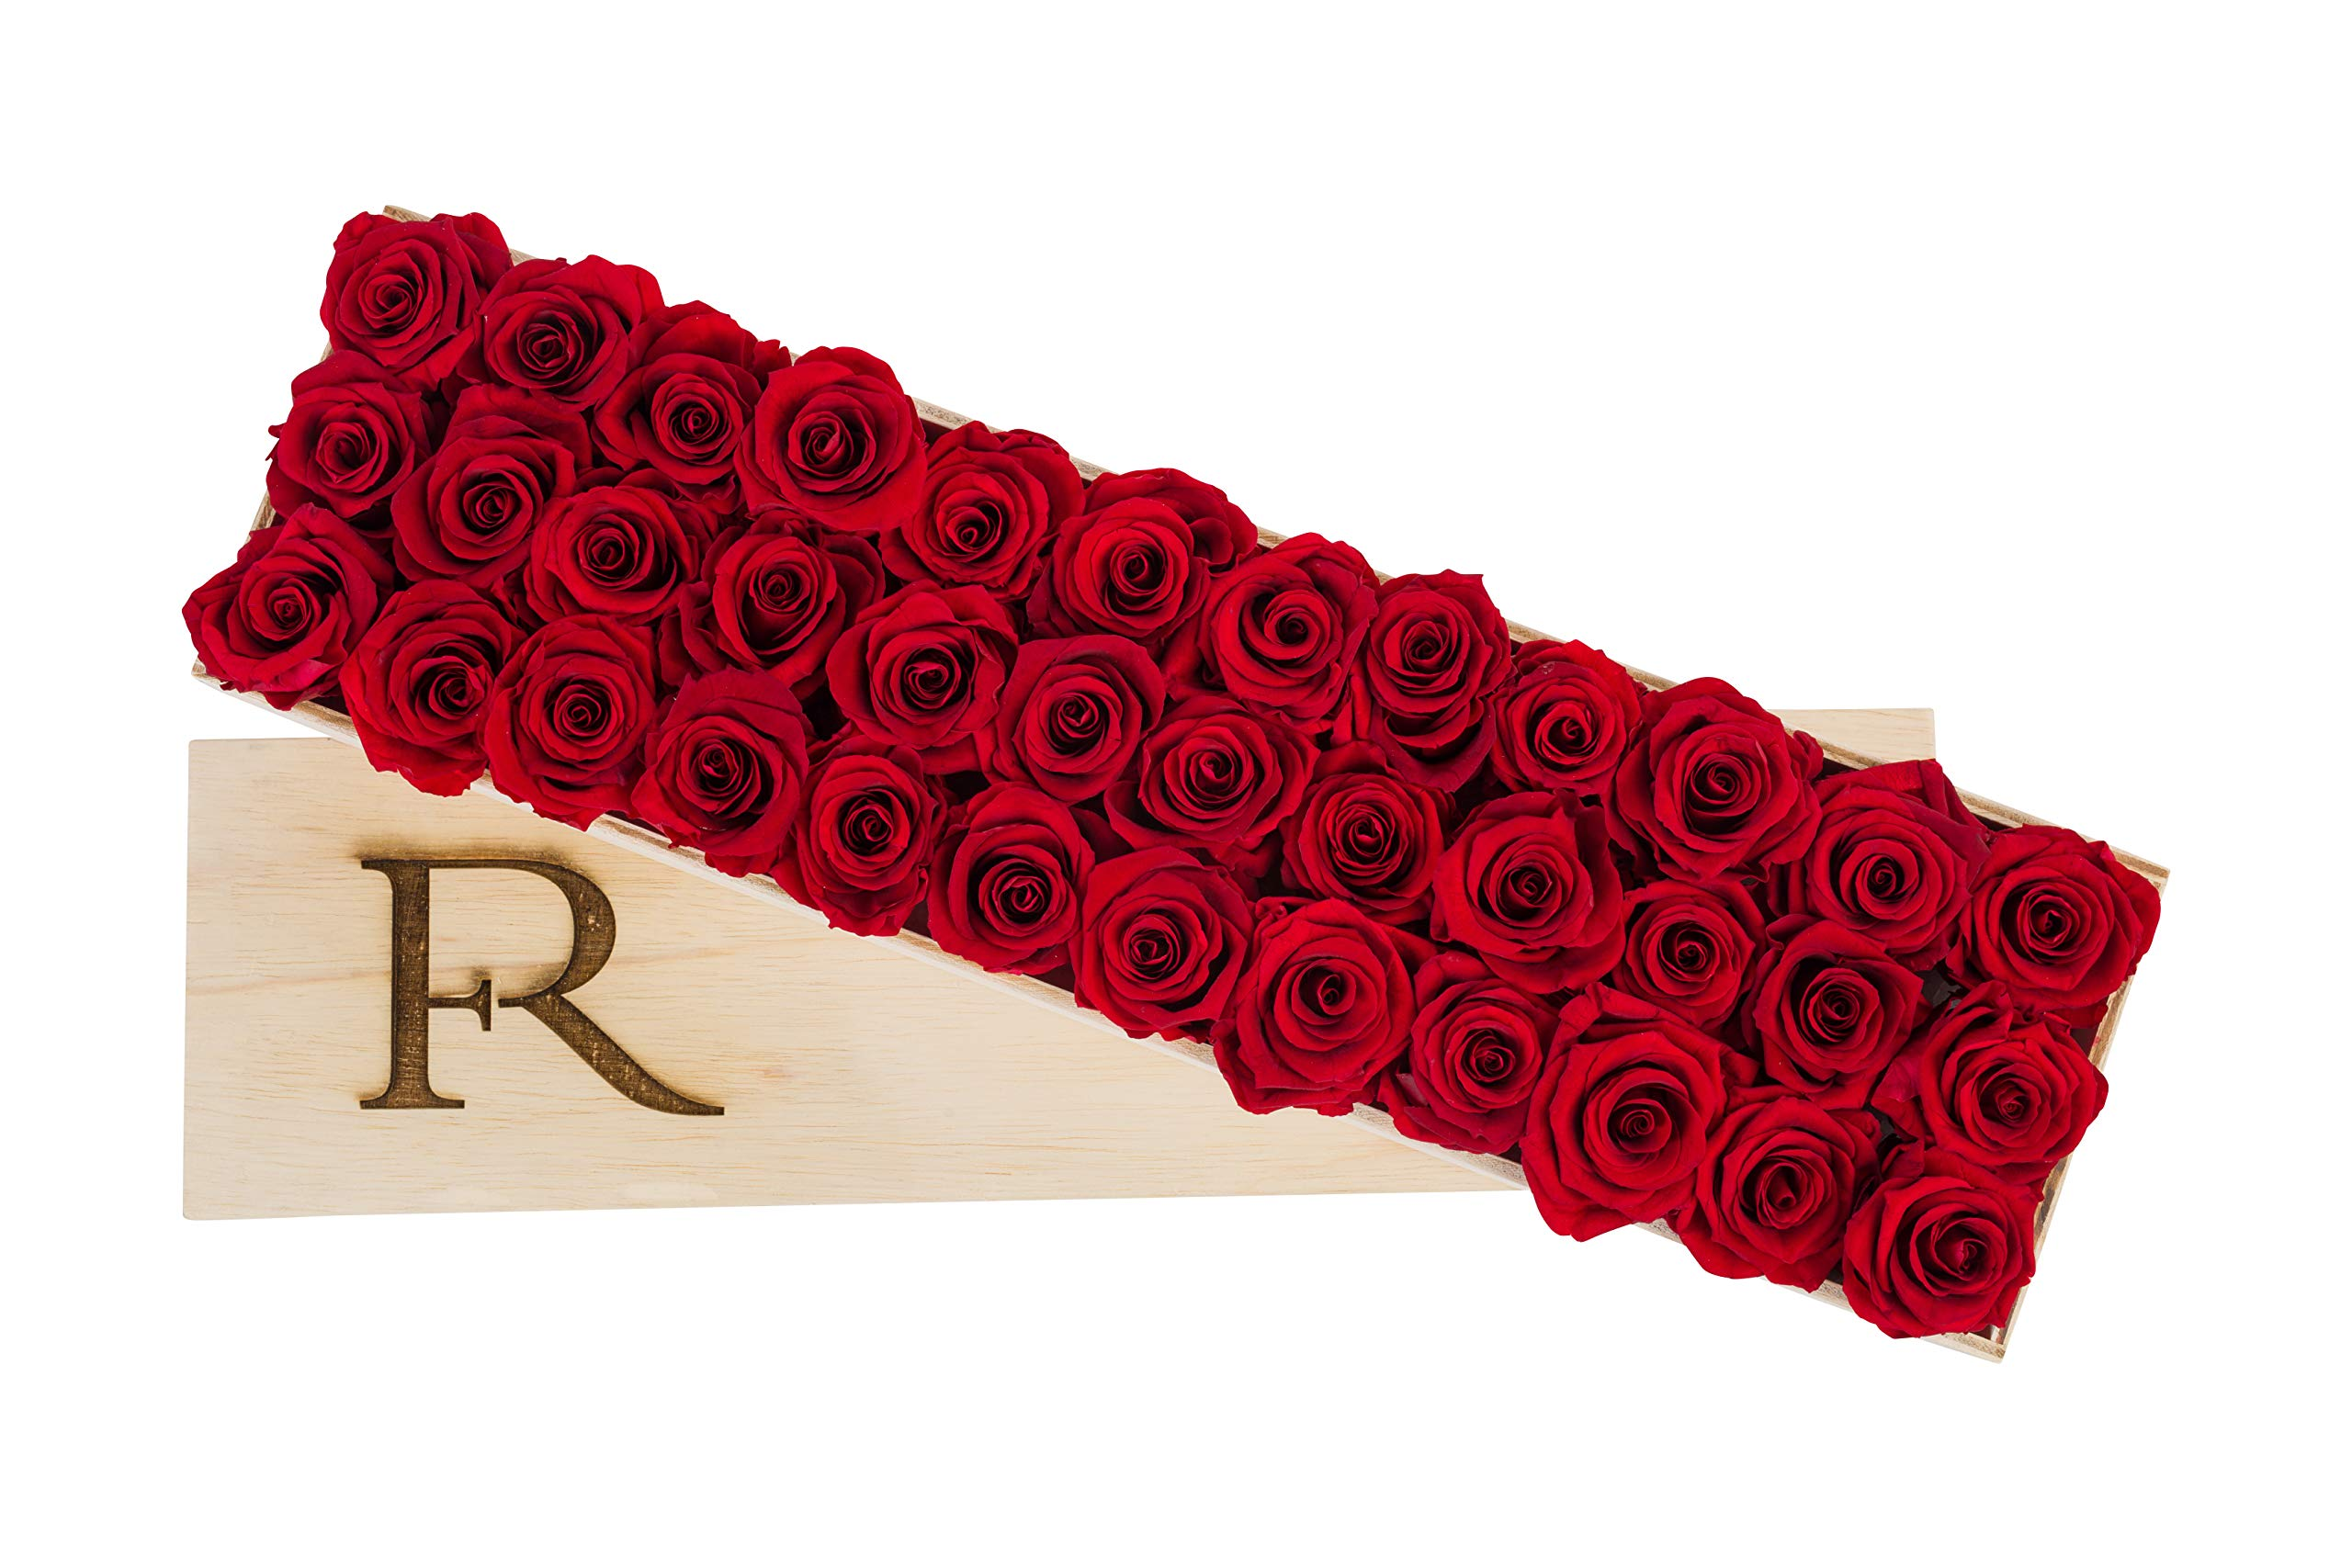 Flower Republic's Preserved Roses | Real Roses That Last a Year | Luxury Gift by Flower Republic